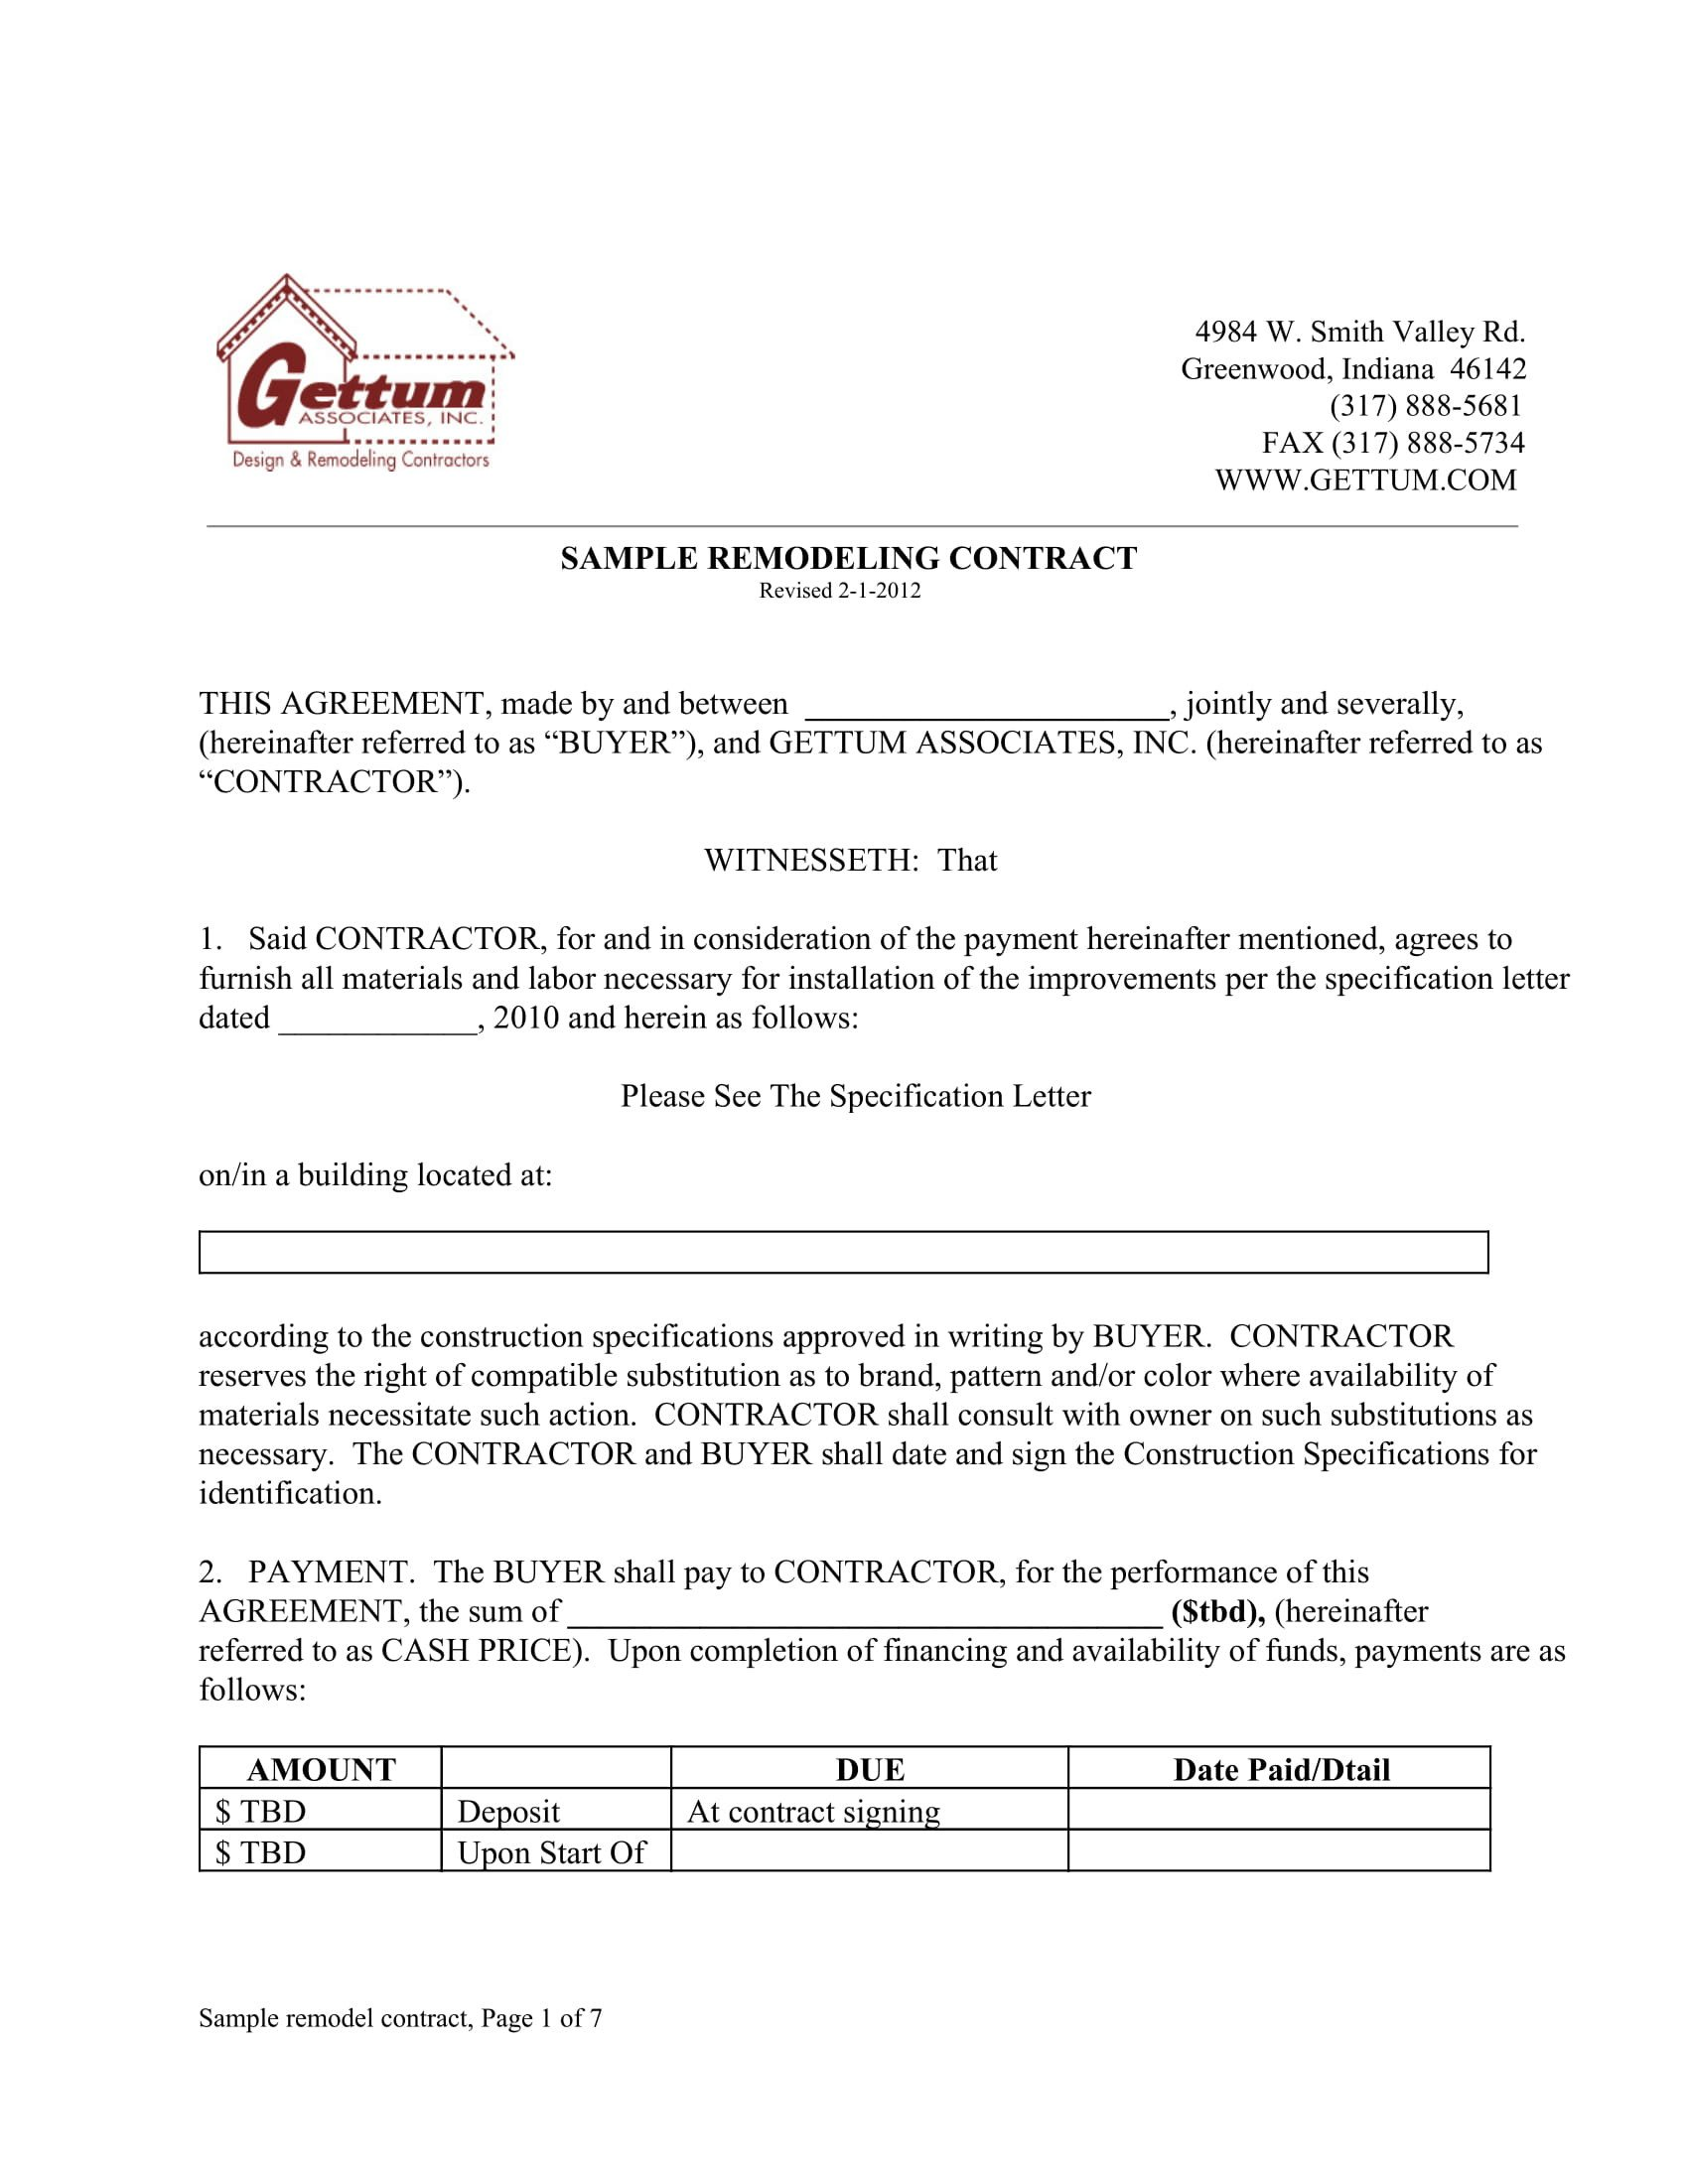 Home Remodeling Contract Template 10 Bathroom Renovation Contract Template Examples Pdf